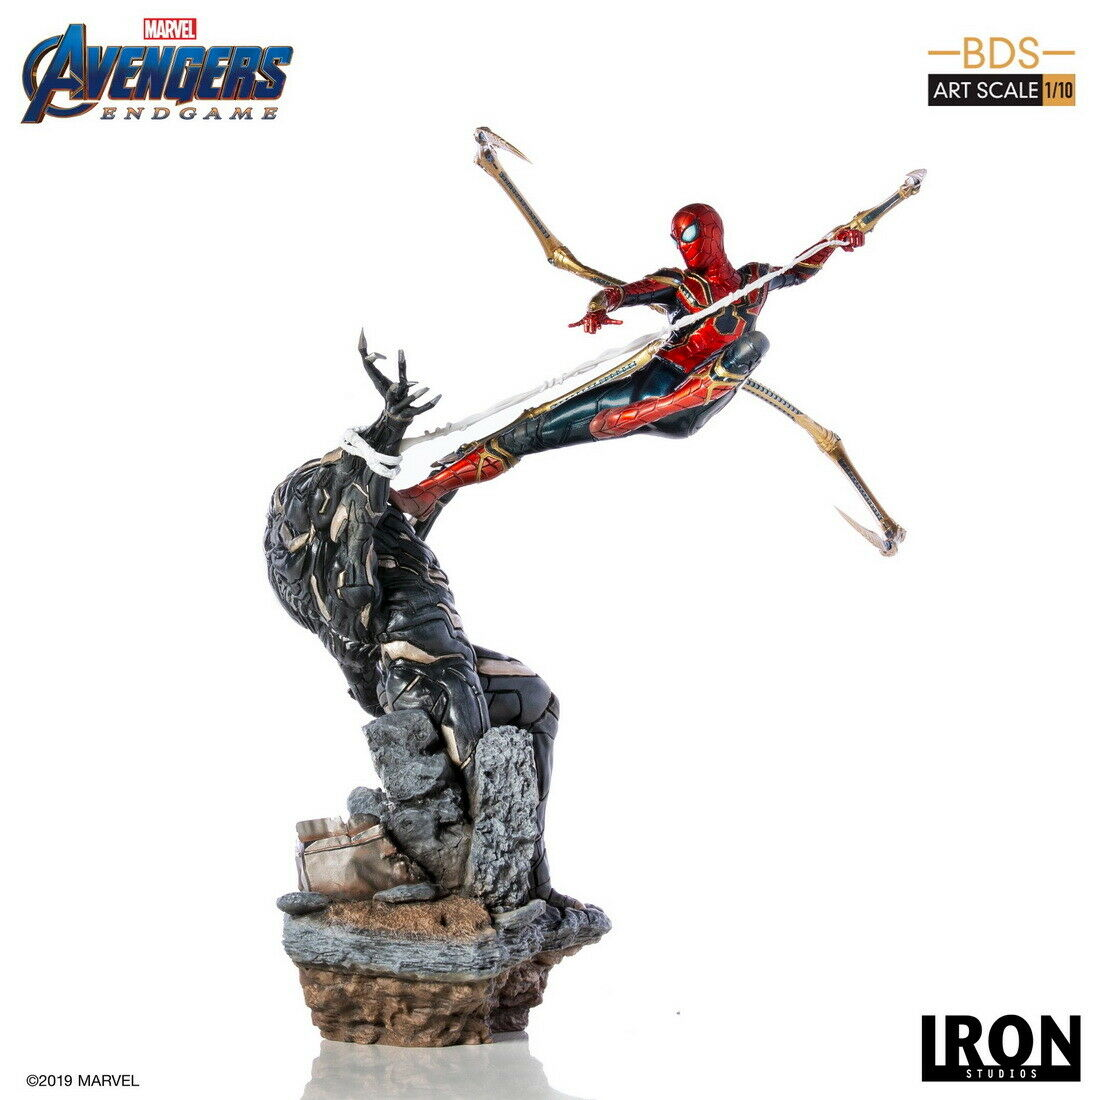 Iron Studios Avengers: Endgame Iron Spider Man Vs Outrider 1/10 Statue US SHIP on eBay thumbnail